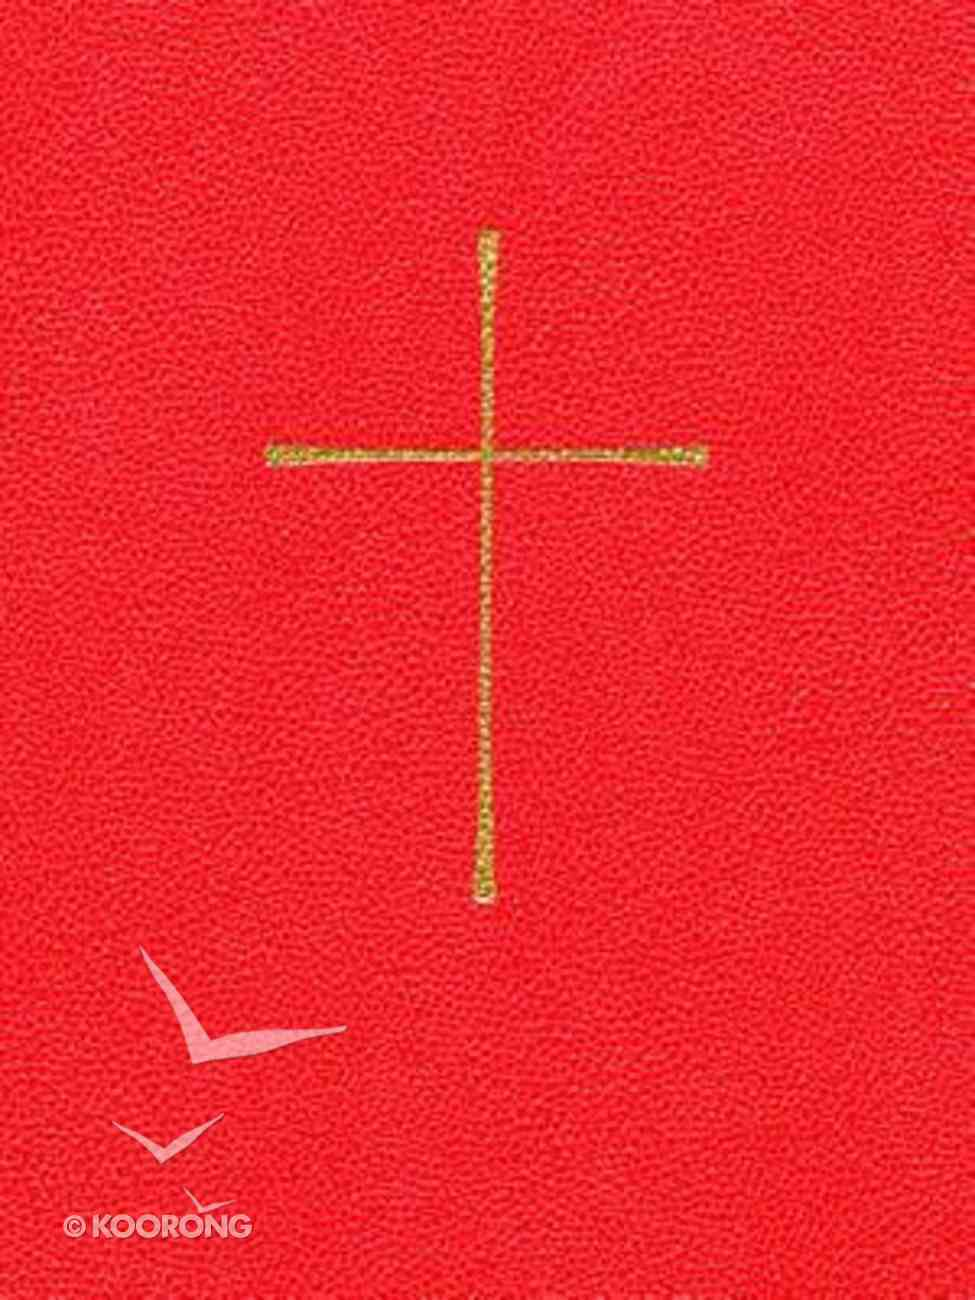 Book of Common Prayer Red Paperback